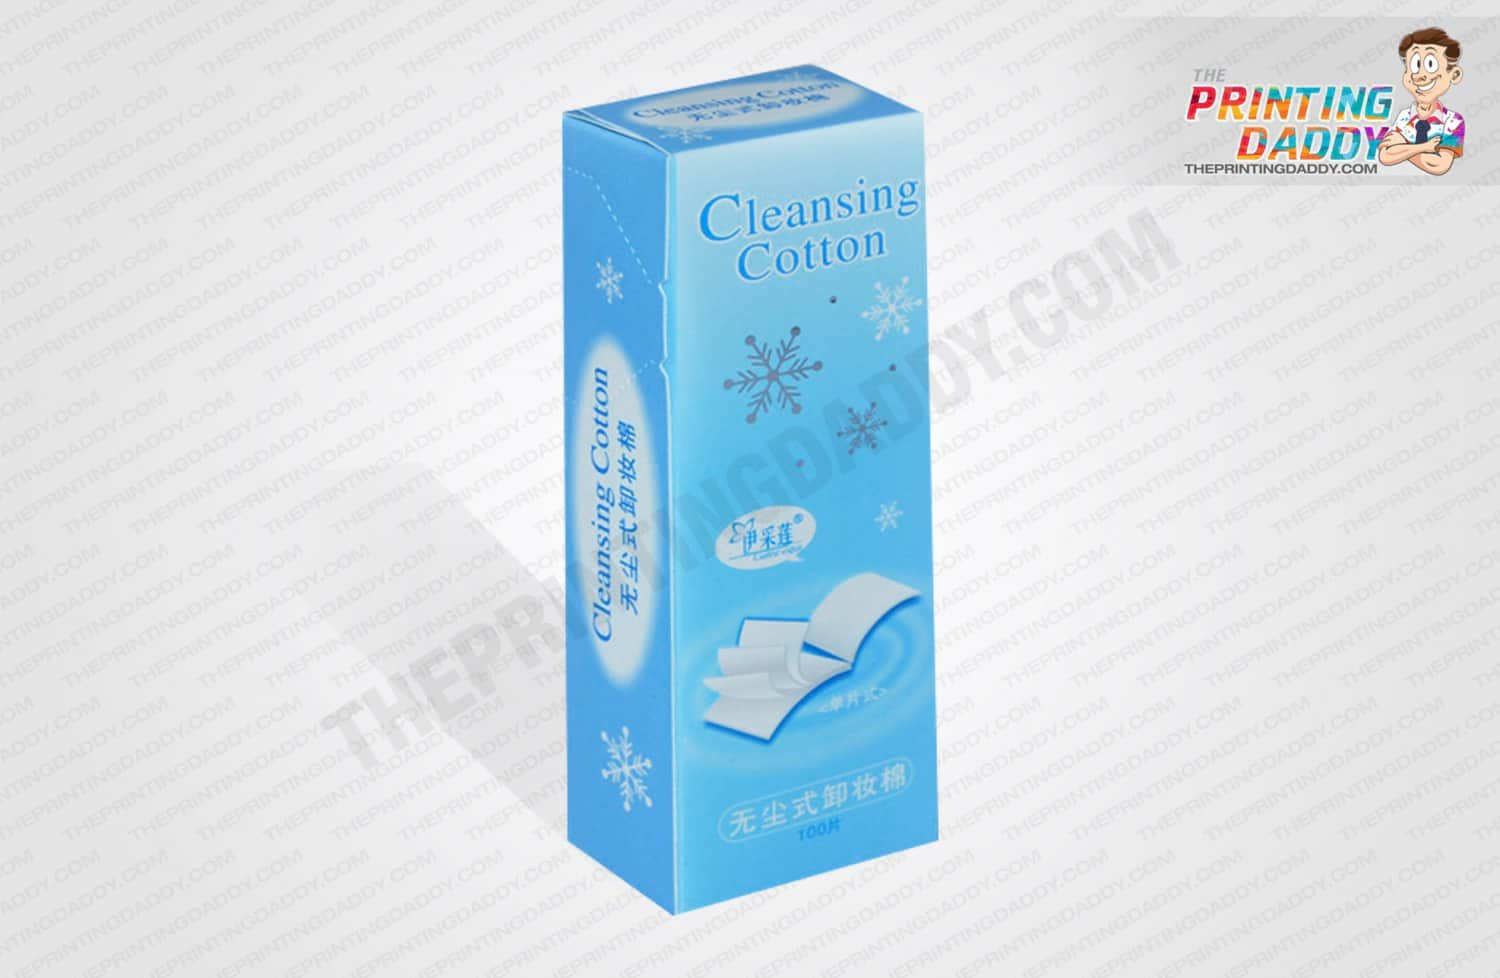 Cleansing Cotton Packaging Boxes The Printing Daddy